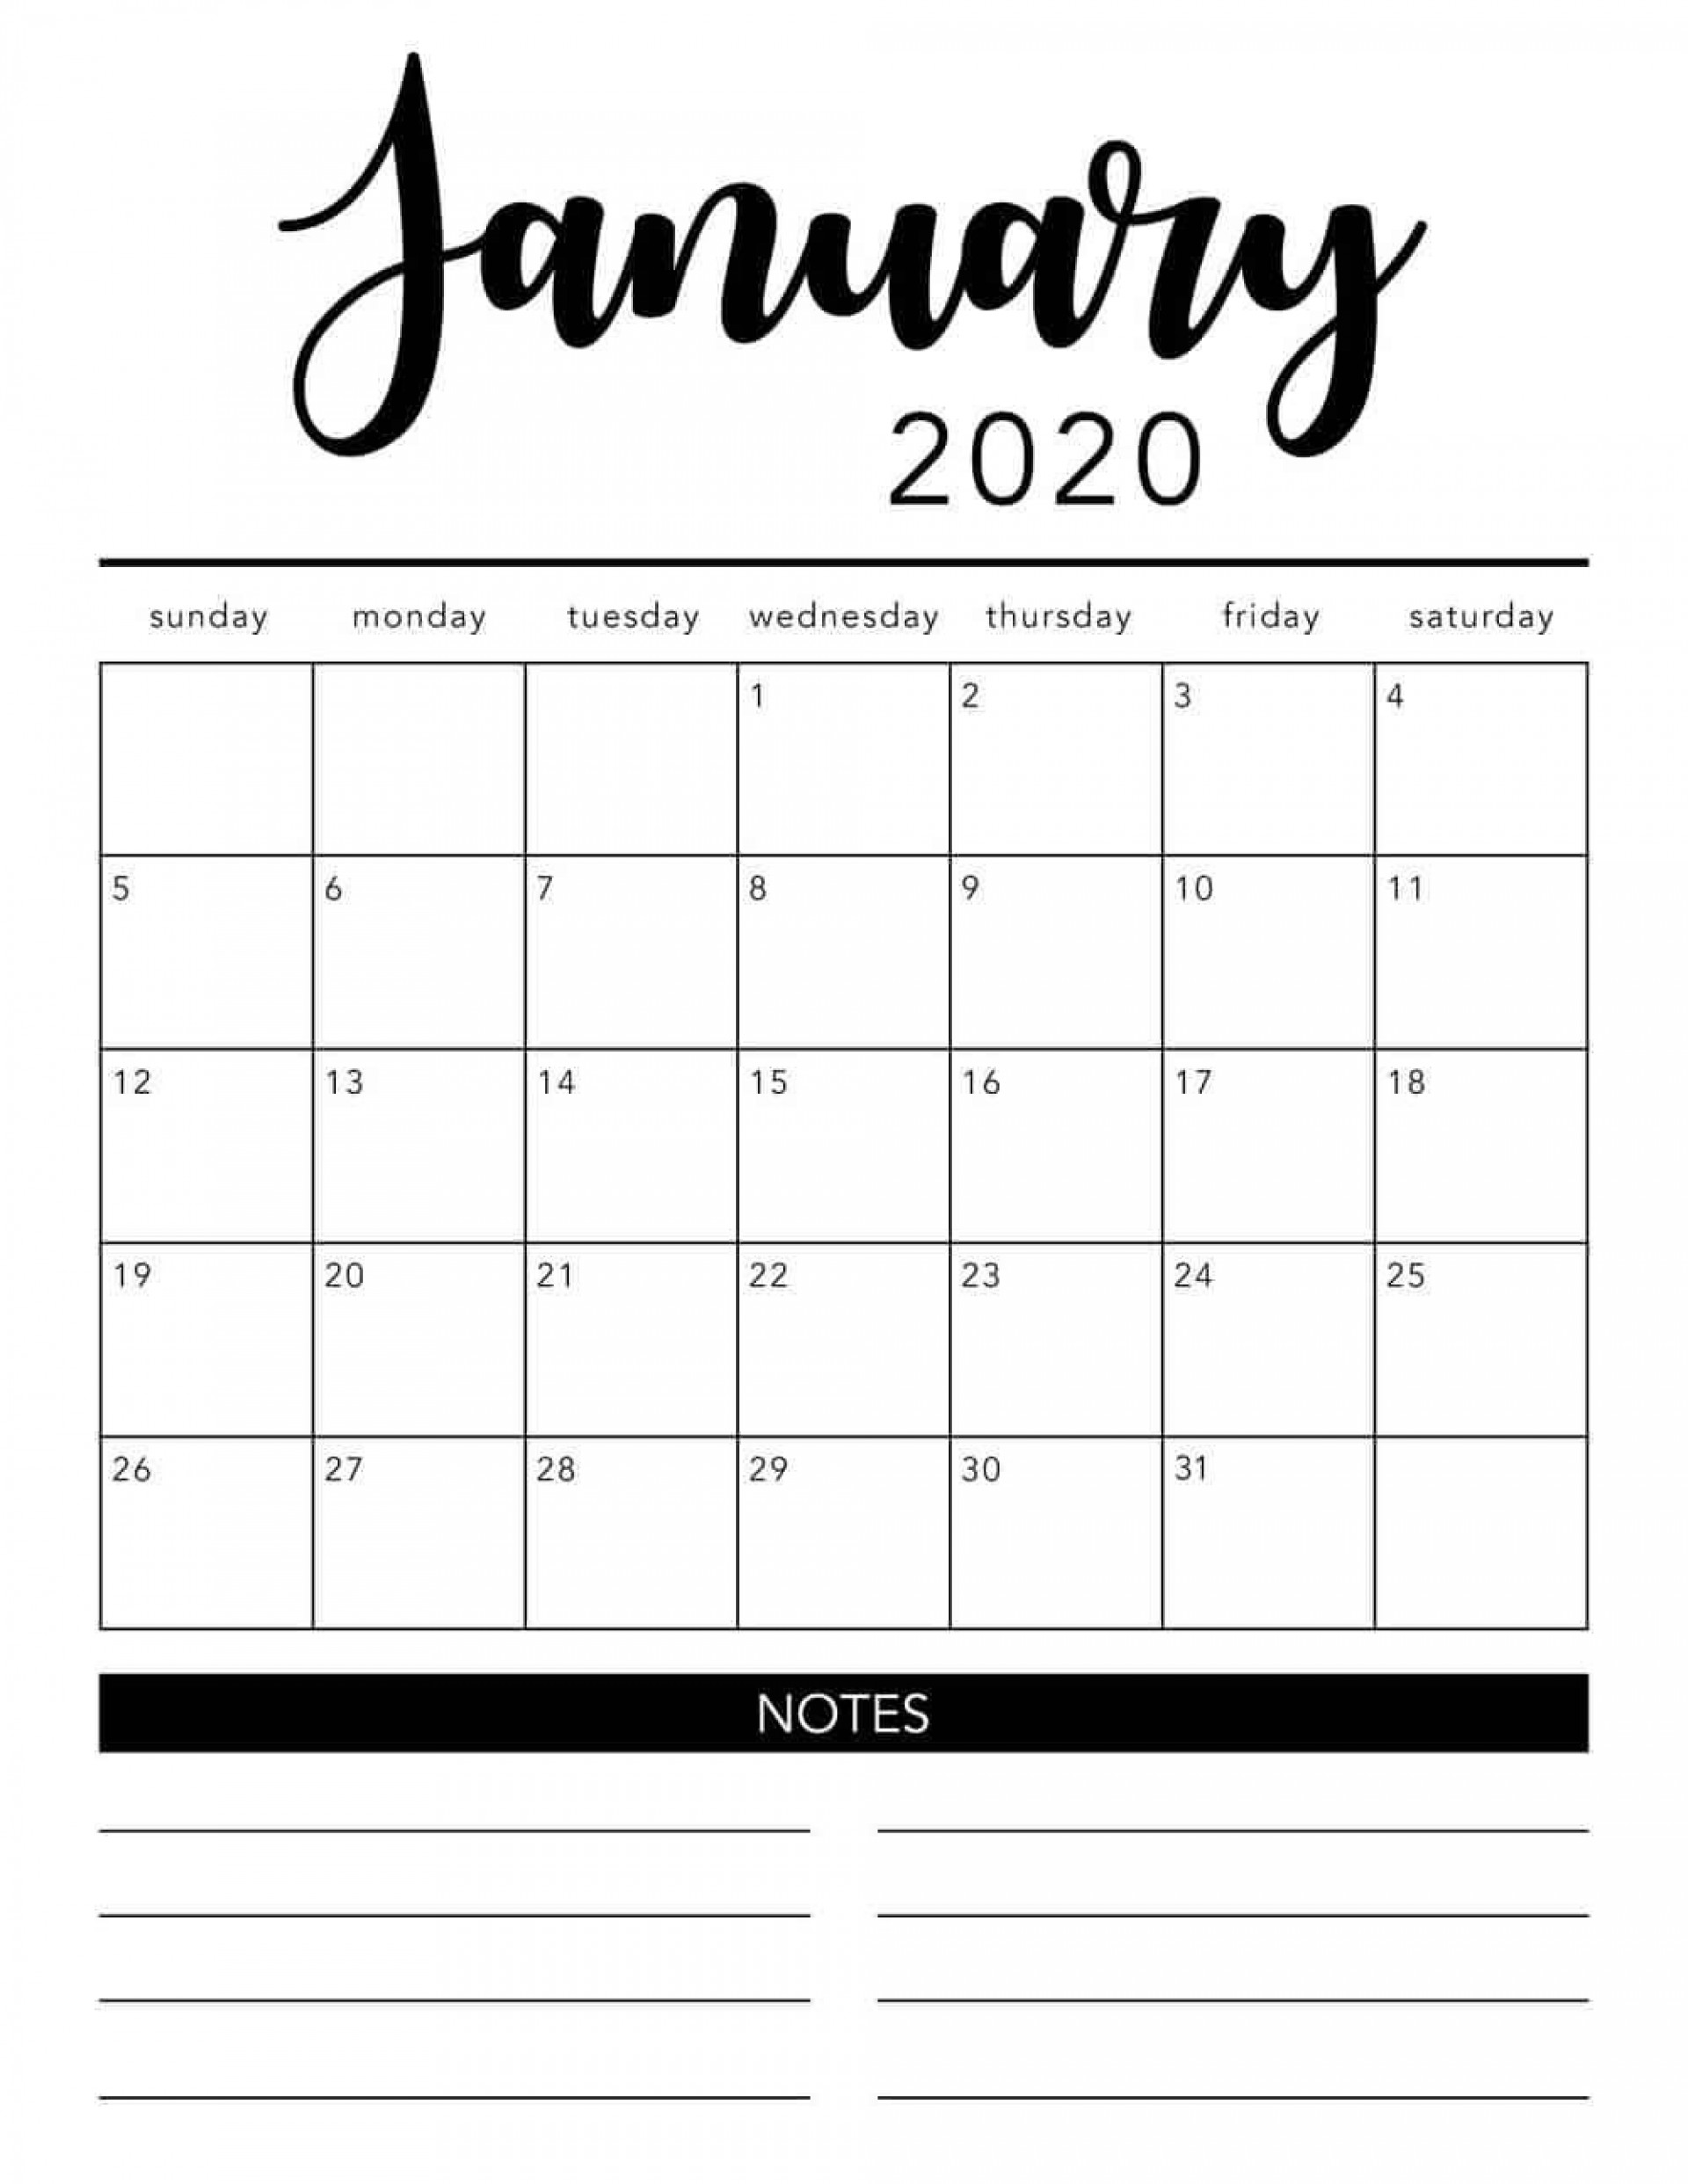 003 Magnificent Monthly Calendar Template 2020 Inspiration  Editable Free Word Excel May1920